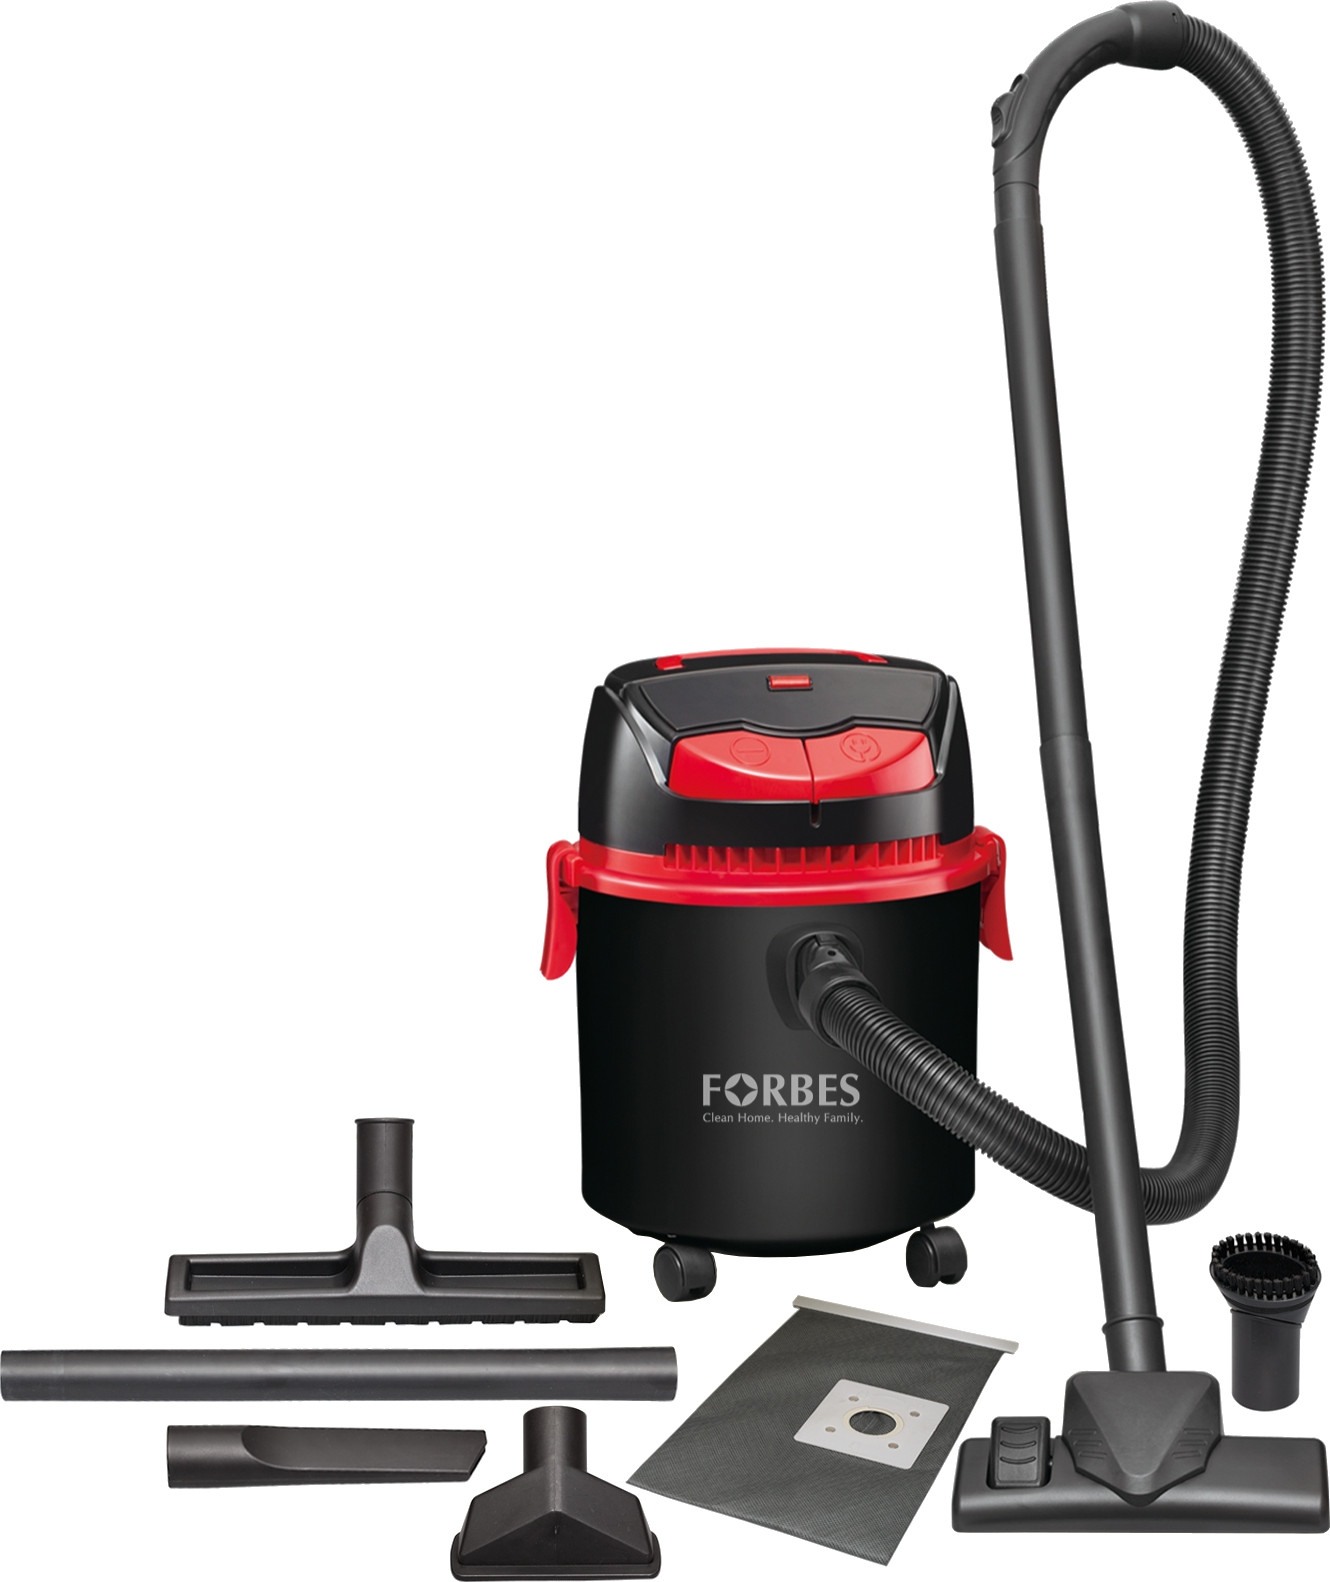 eureka forbes Consumer complaints and reviews about eureka forbes - eureka ro water purifier eureka forbes contact information and services description.